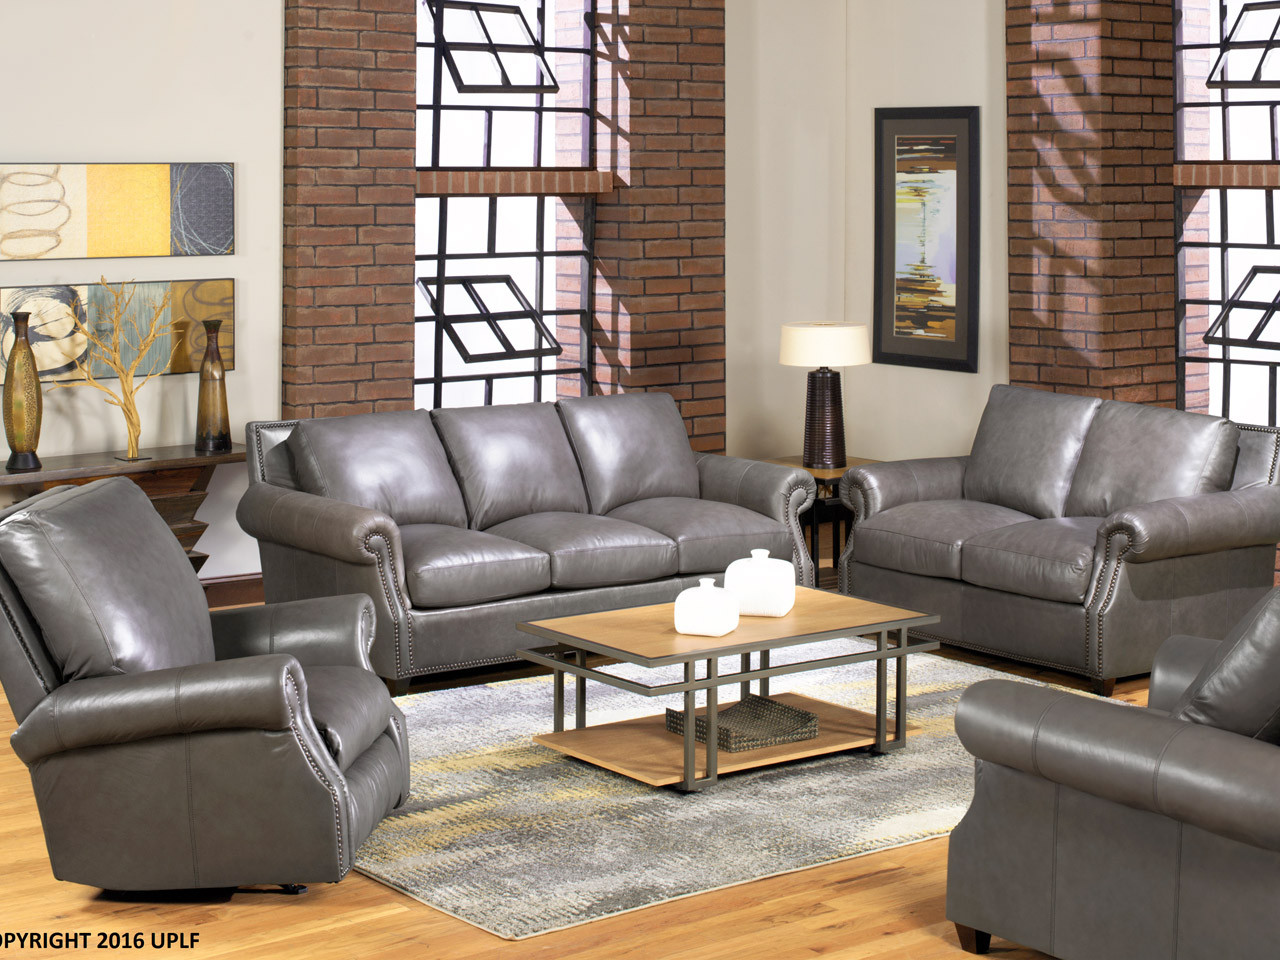 Available As Sofa, Love Seat, Chair, Ottoman, Rocking Recliner Or Power  Recliner